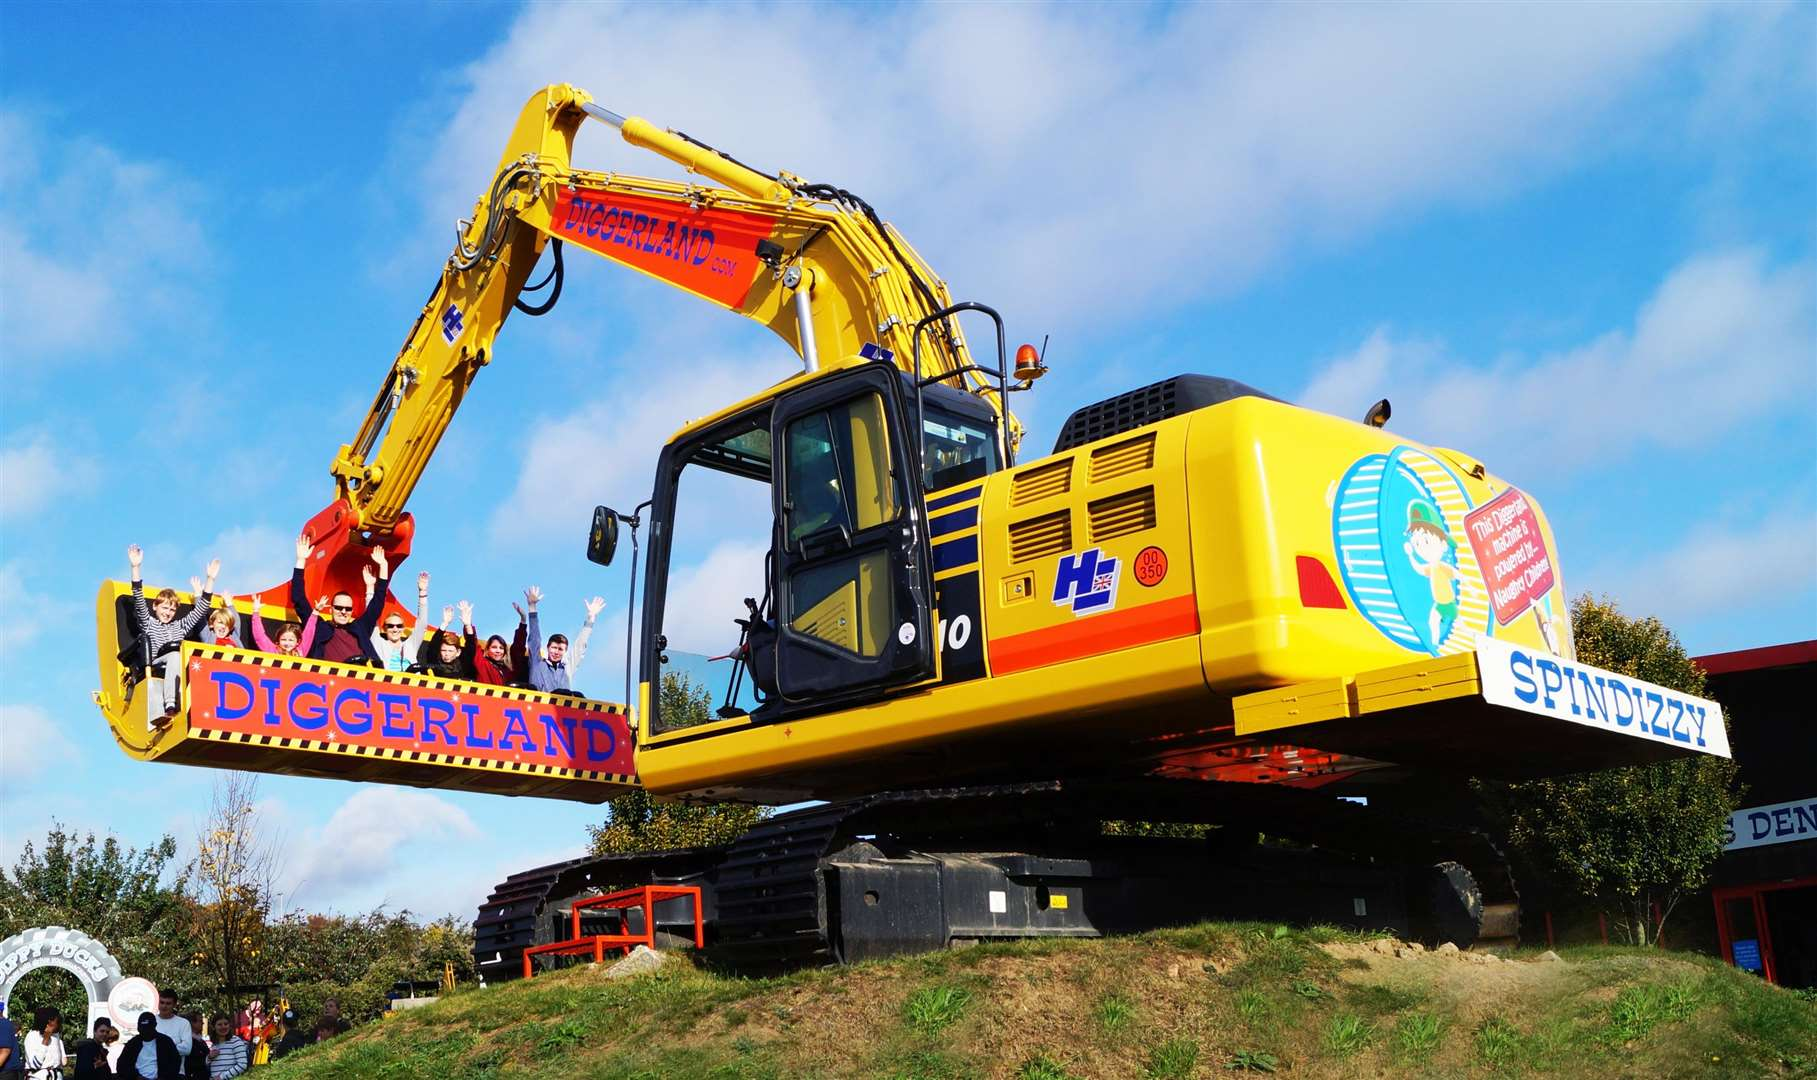 Head to Diggerland in Strood this summer